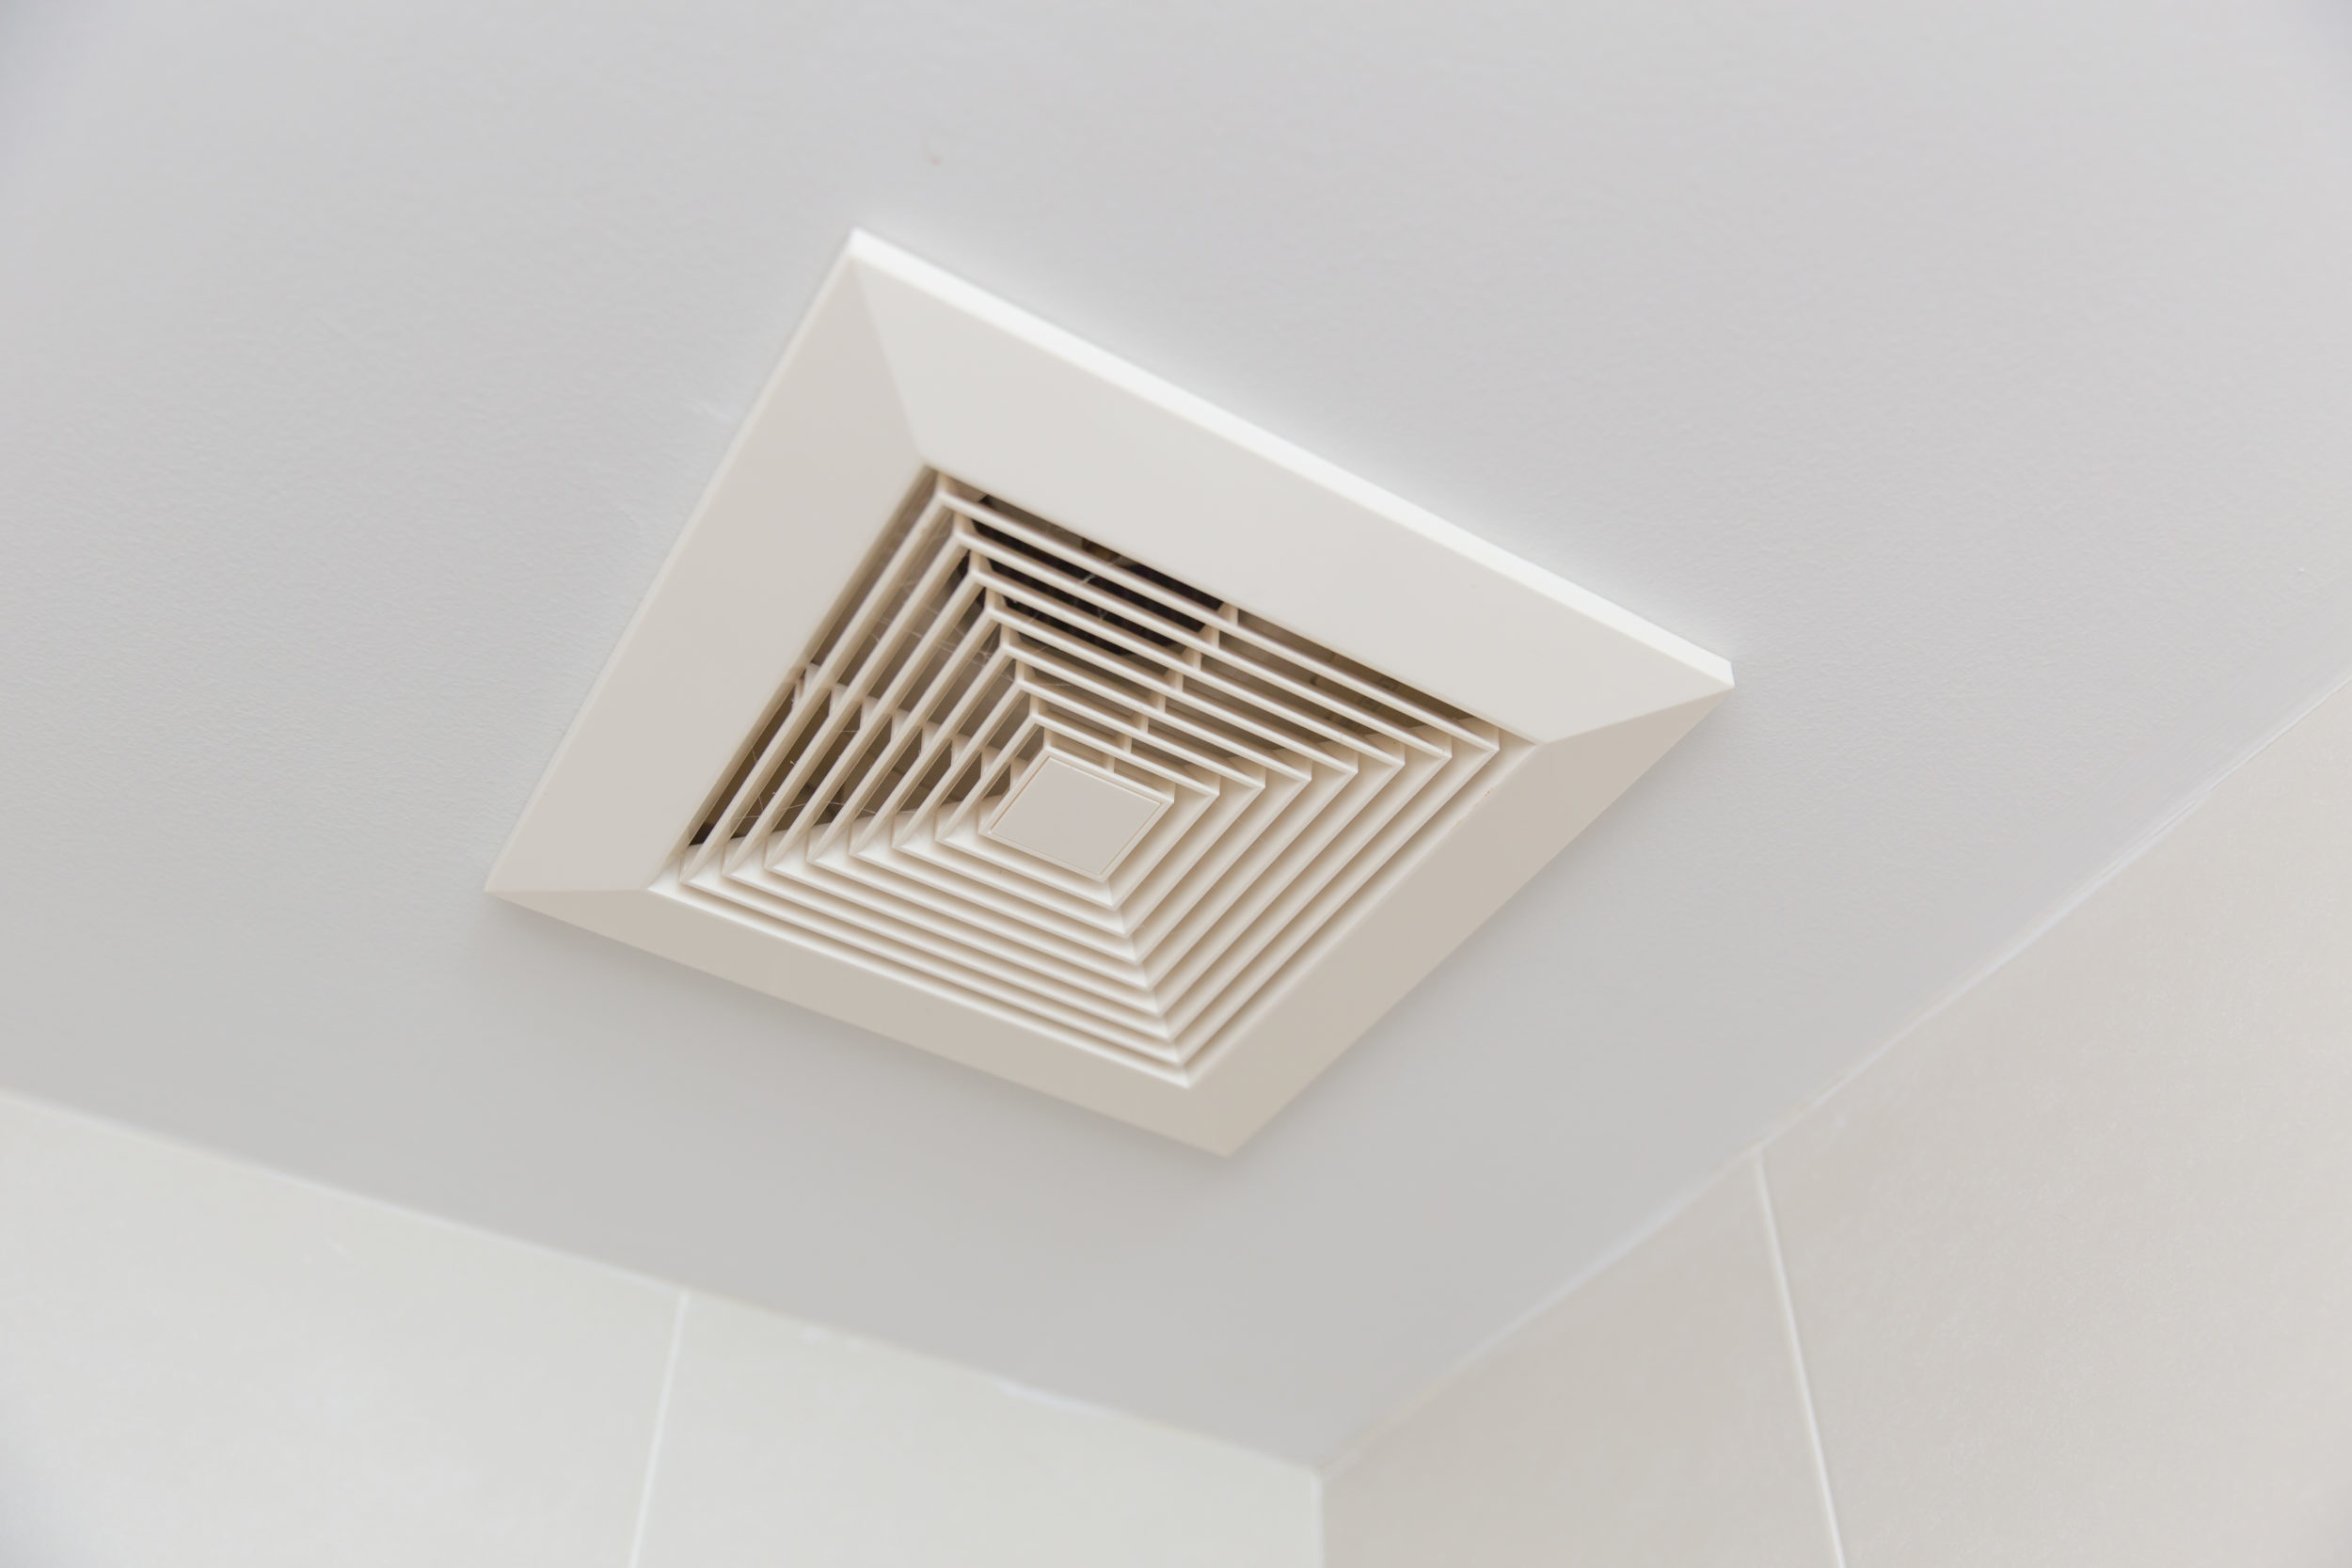 Ducted Air Conditioner Vent